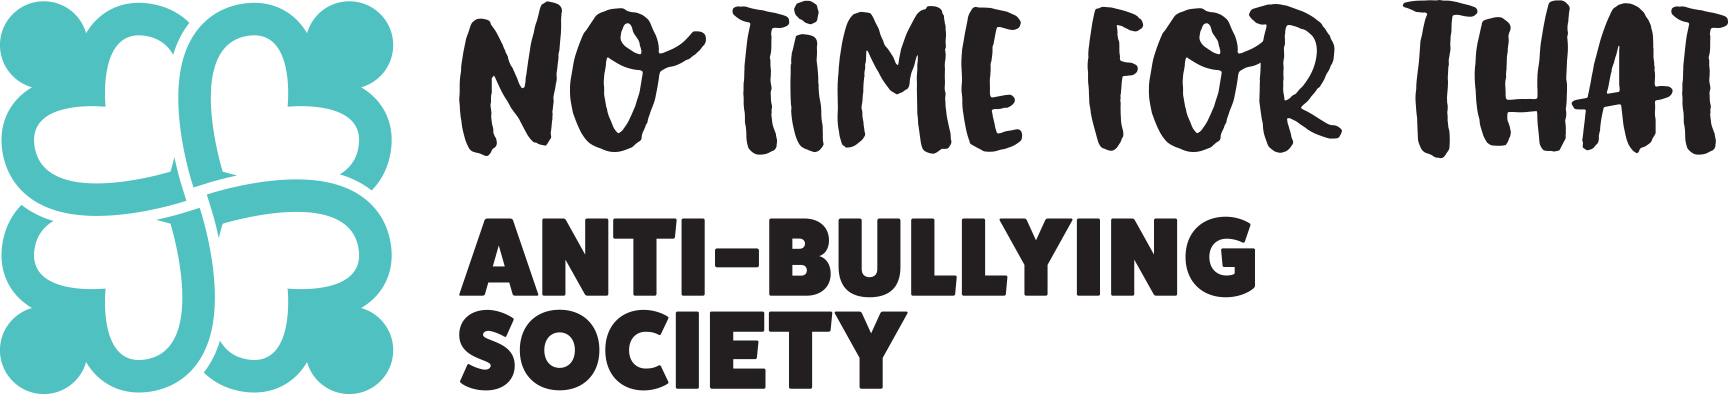 No Time for That Anti-Bullying Society Logo